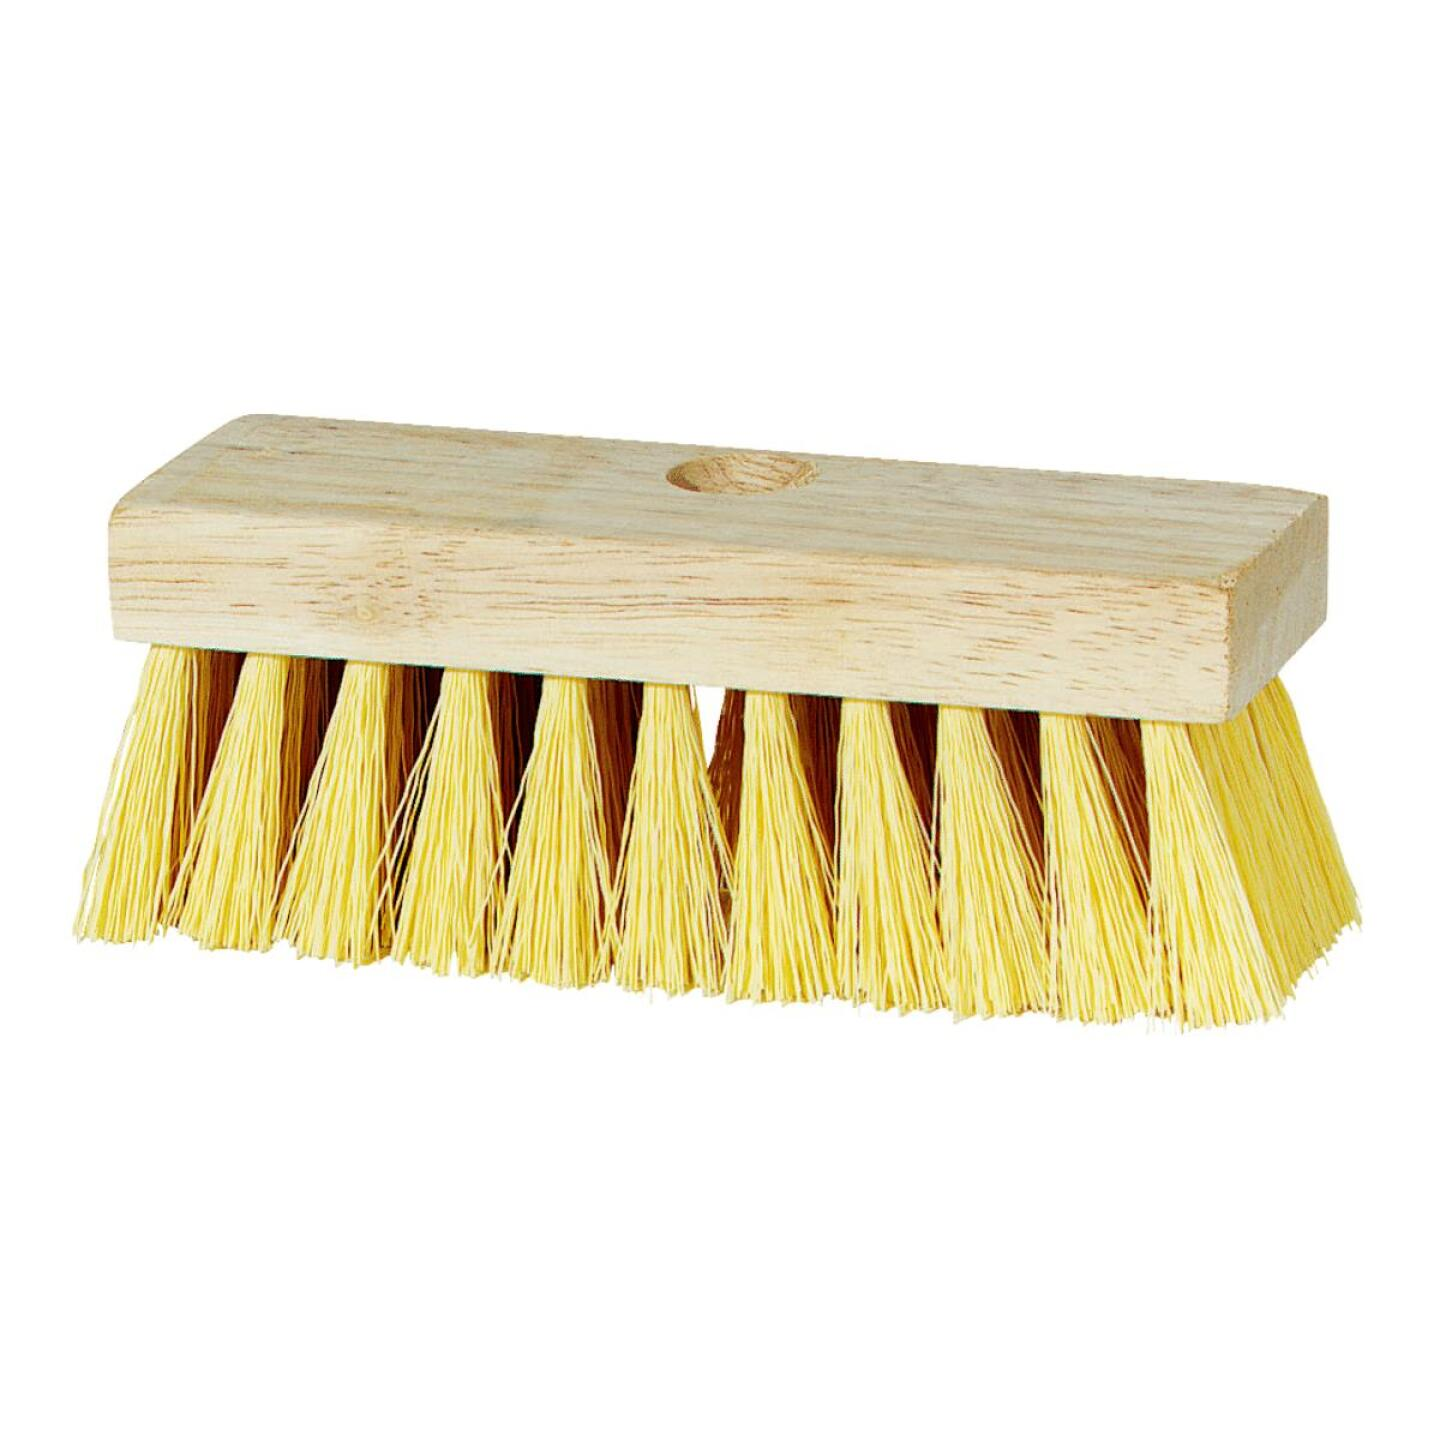 DQB 7 In. x 2 In. Roof Brush Image 1